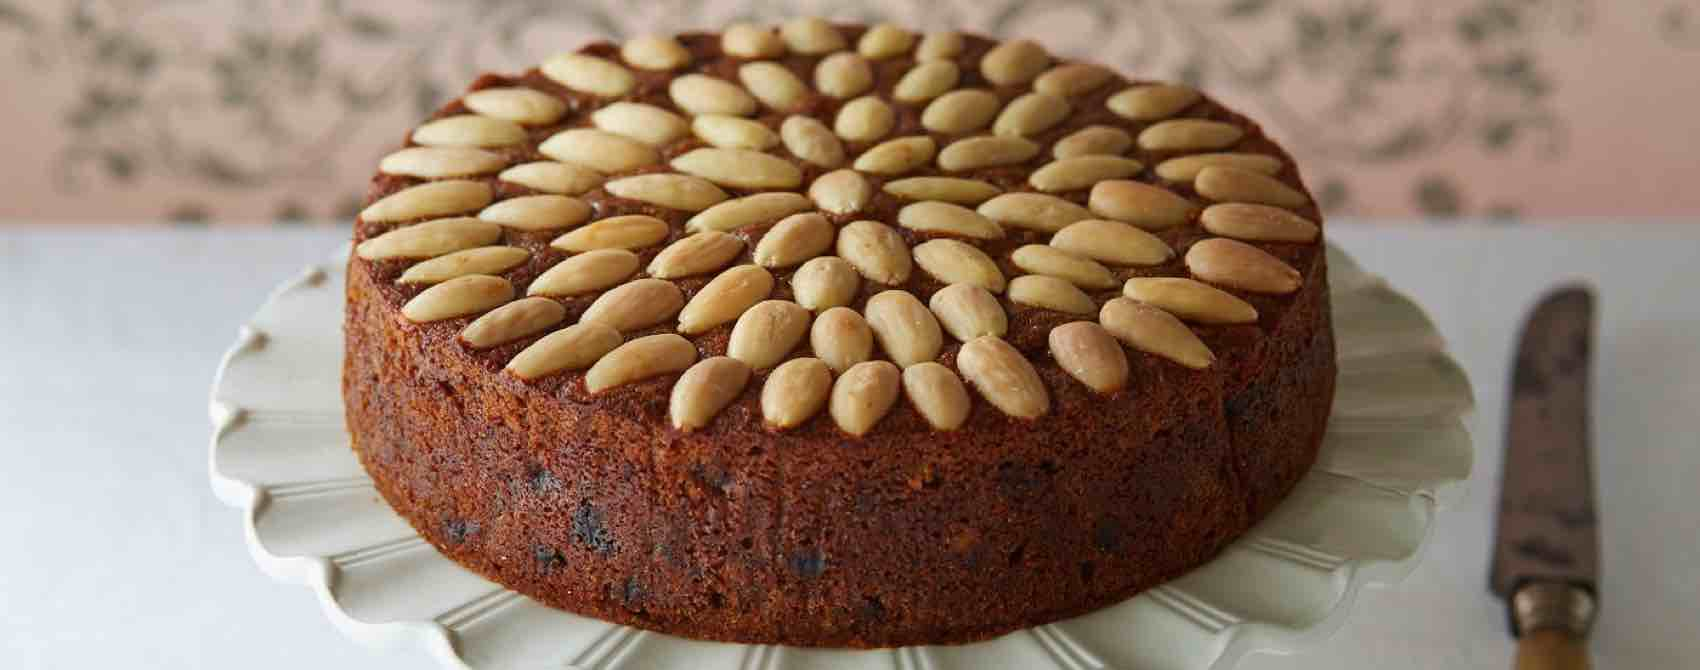 Dundee cake, a taste of Scotland and Bake Britain